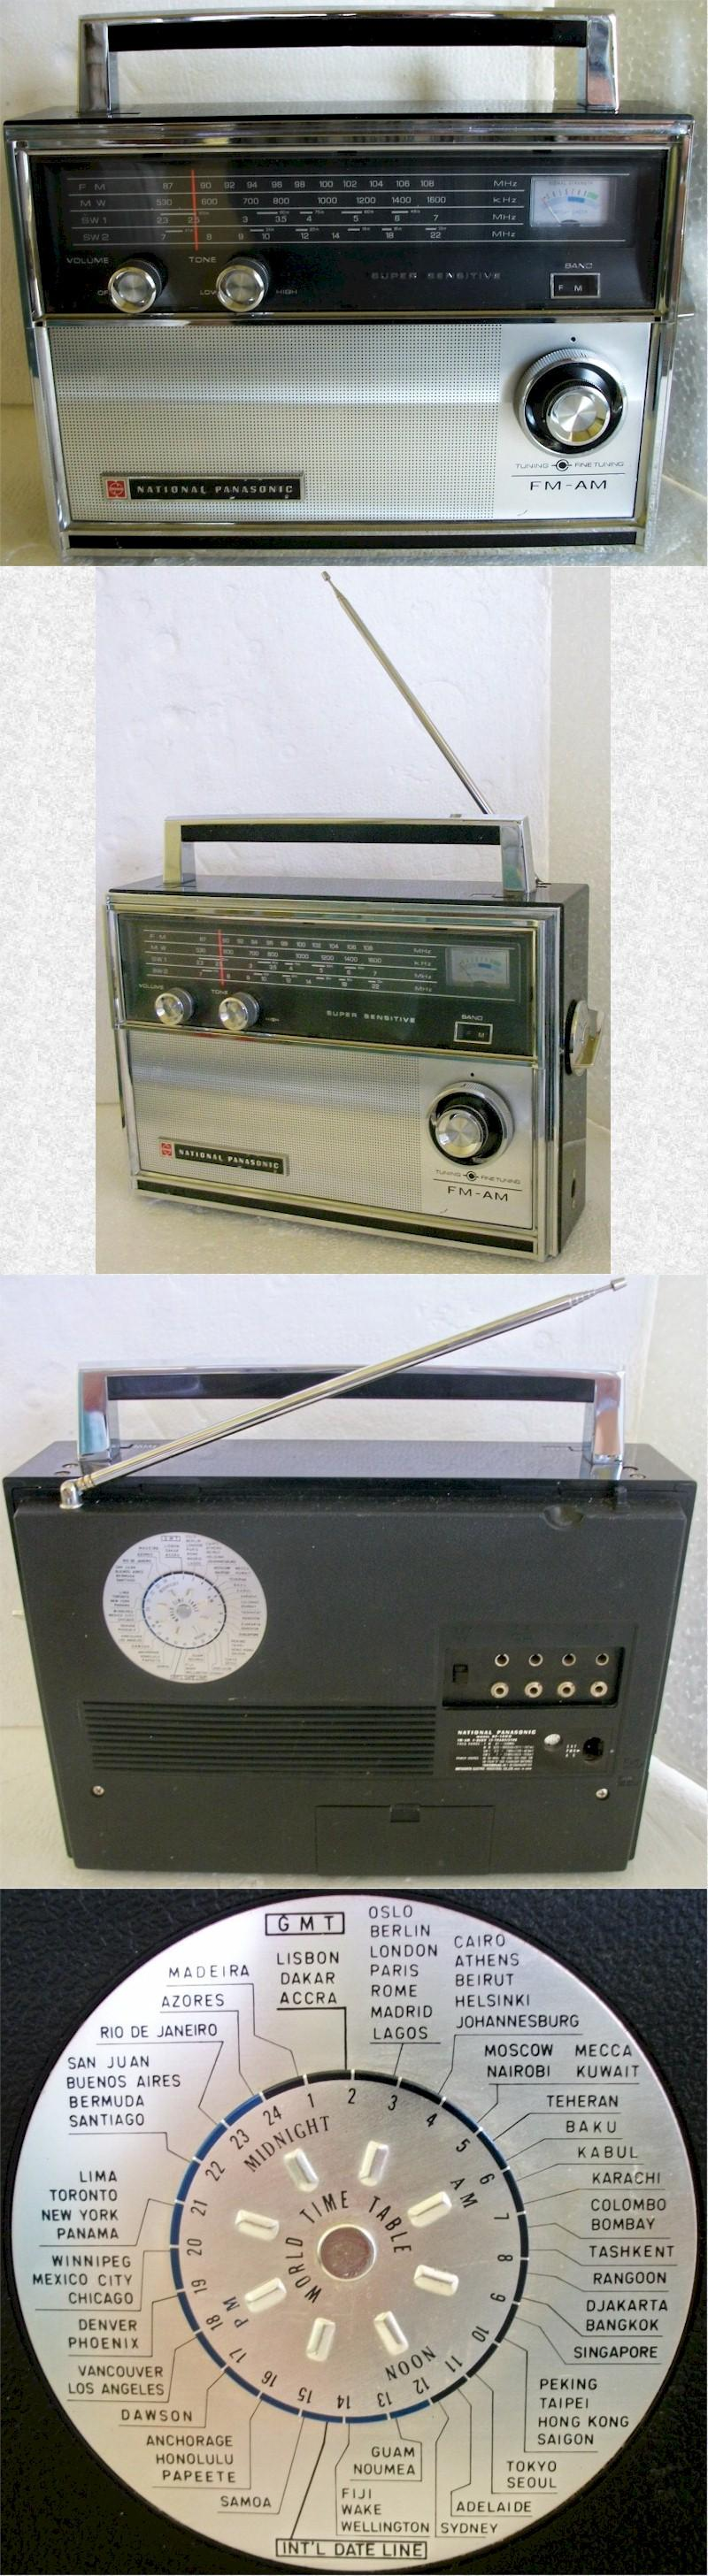 National Panasonic RF-1400 (1965)